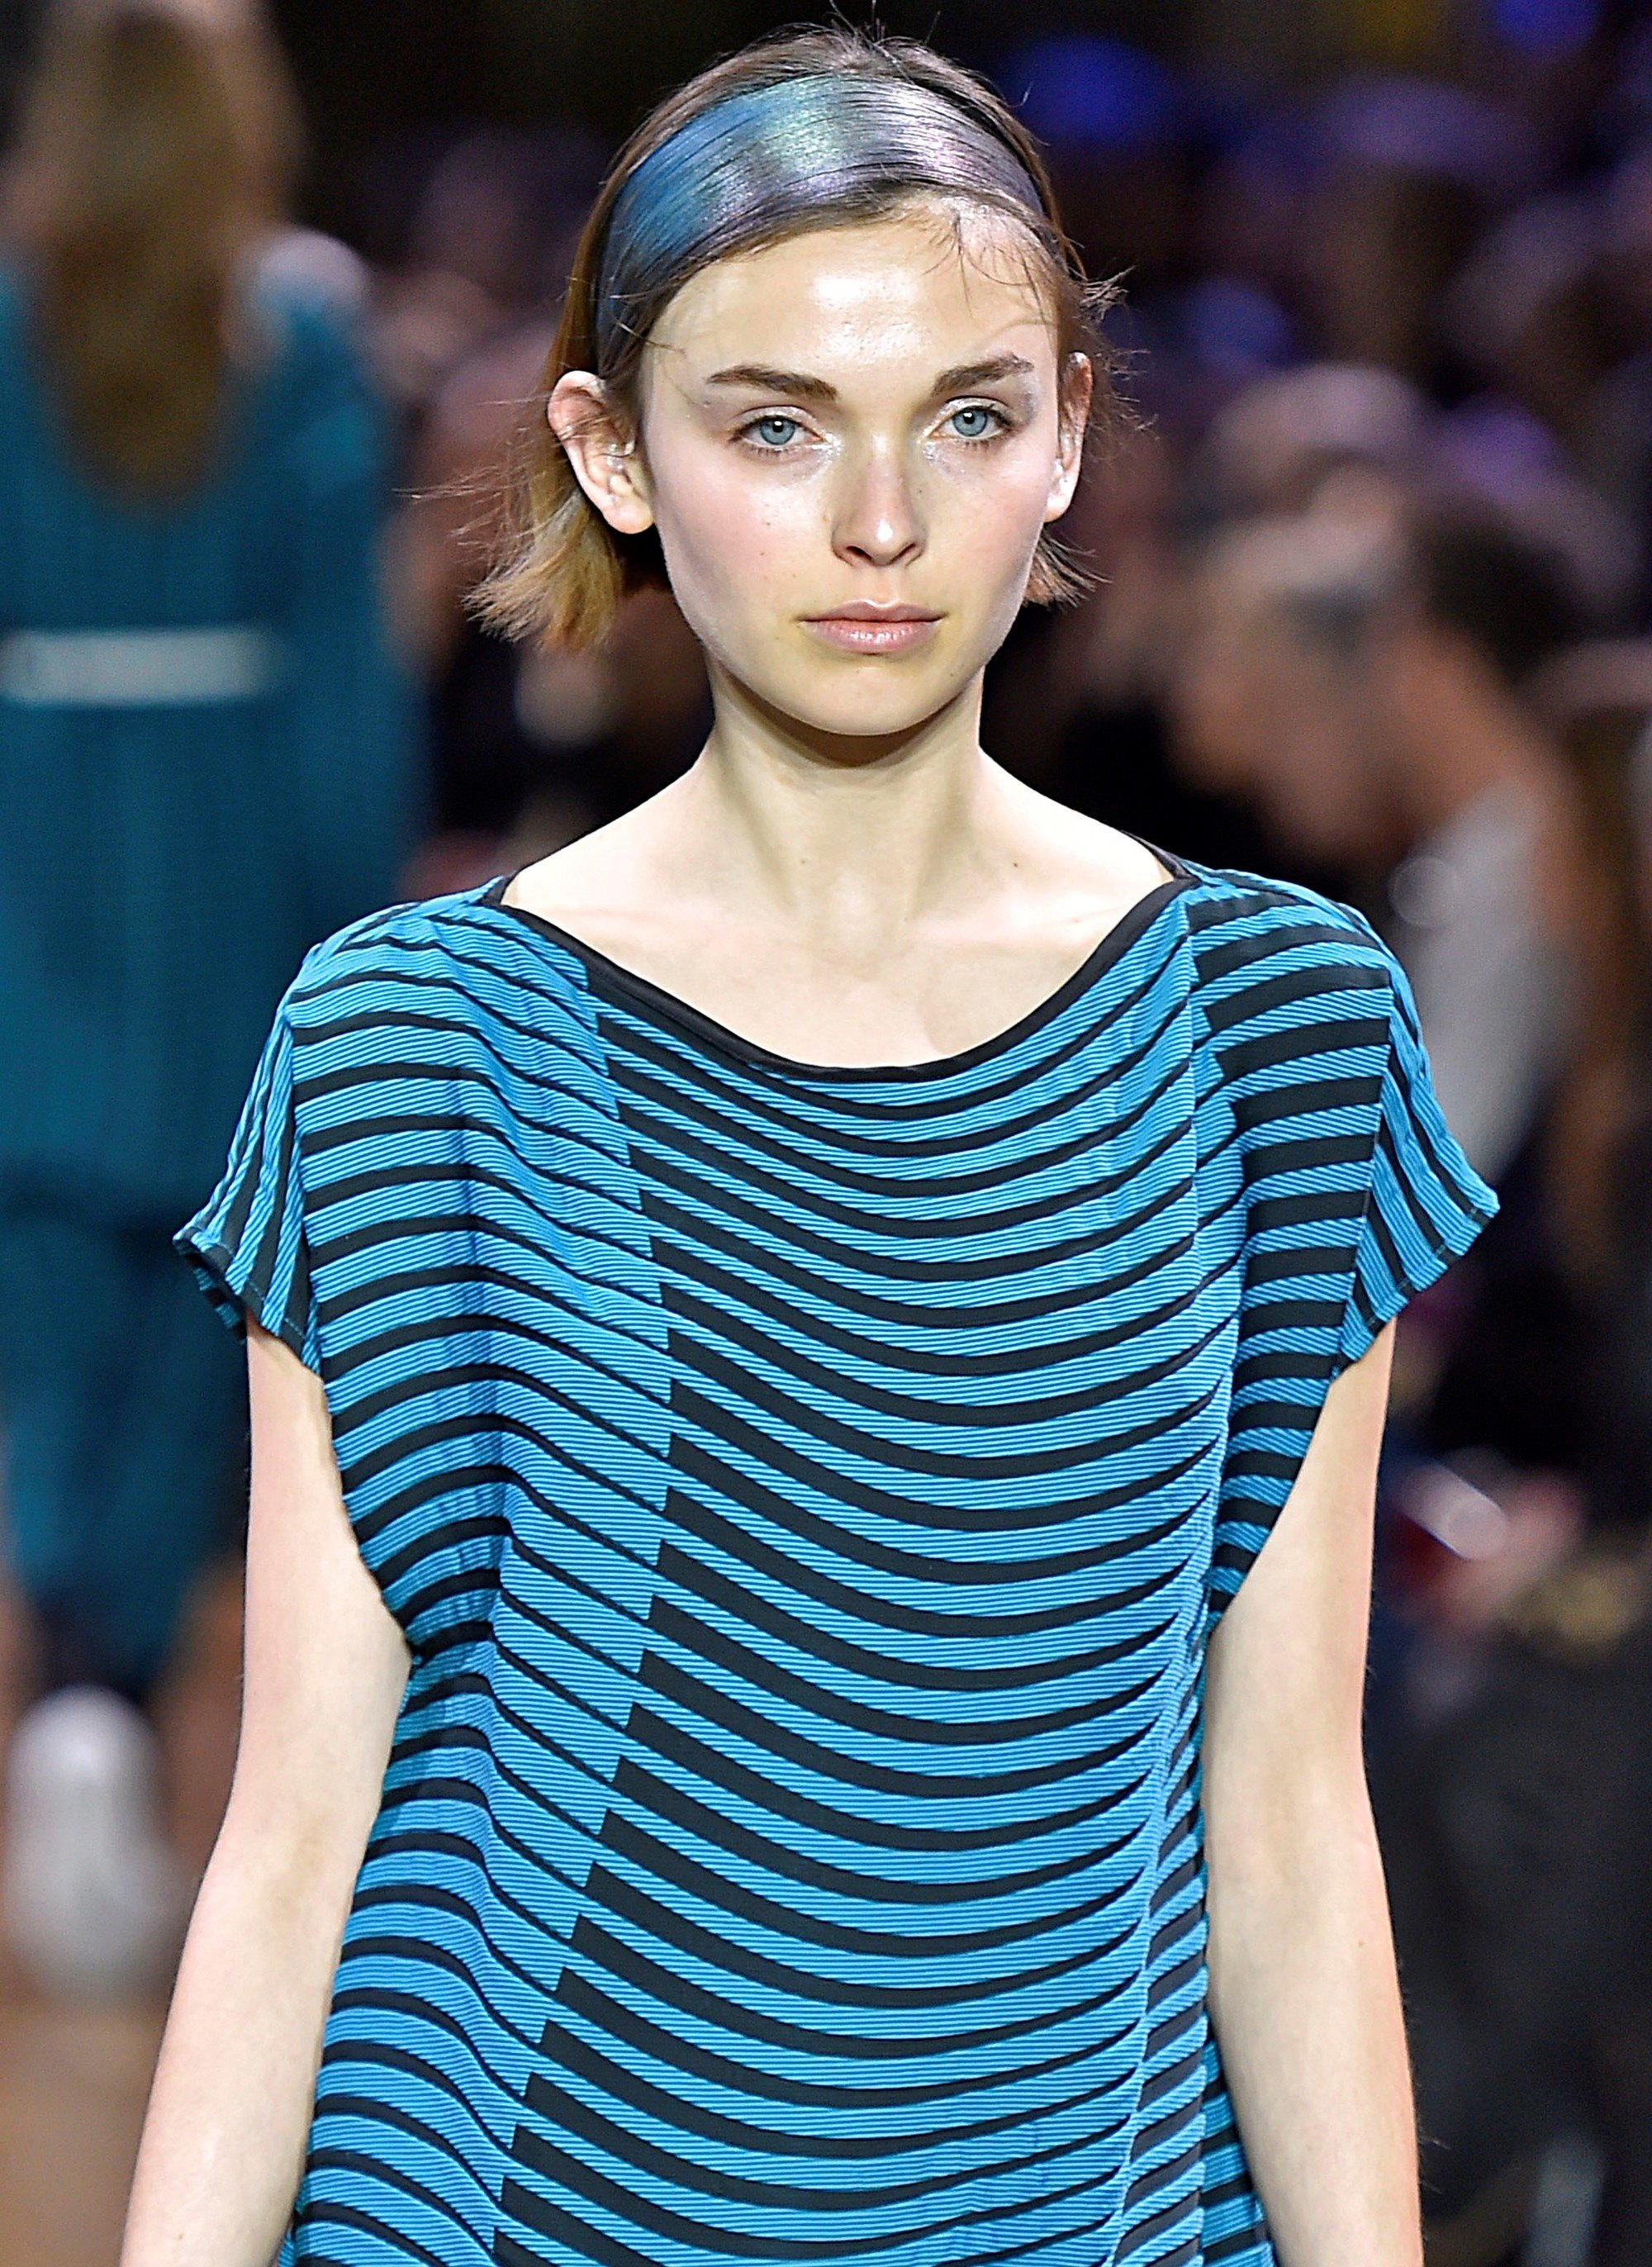 issey miyake model wearing a 60s inspired headband in her brunette hair